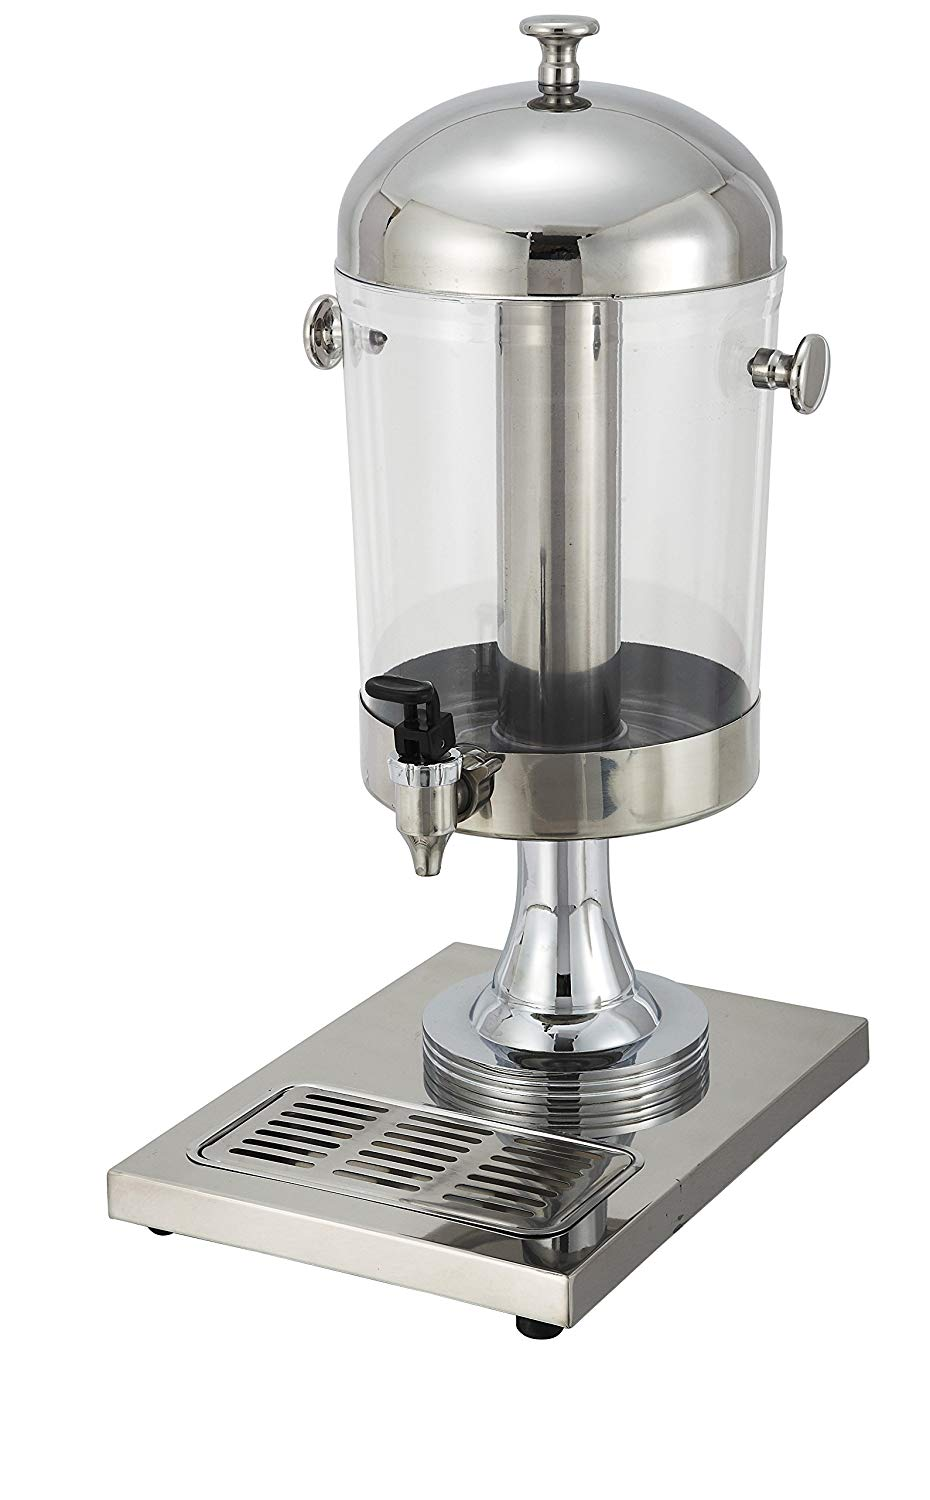 Winco 902 Stainless Steel Juice Dispenser, 7-1/2-Quart - JrcNYC